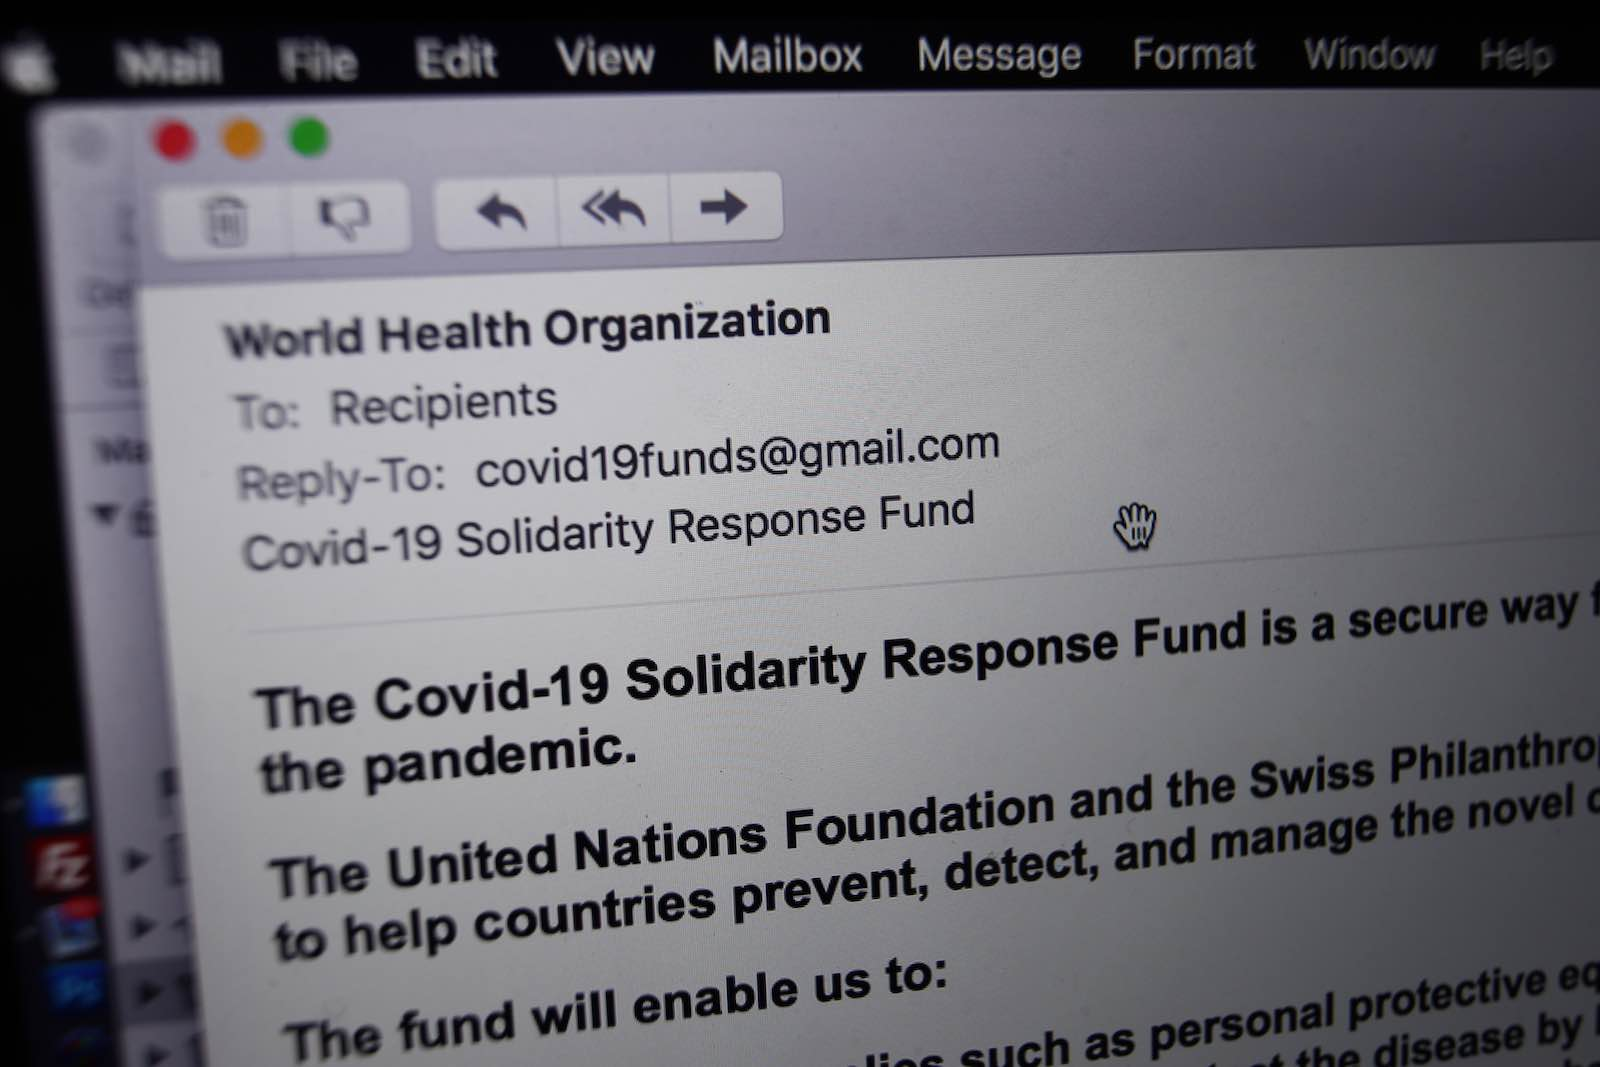 A phishing email from someone posing as the head of the World Health Organisation asking recipients to donate money to a coronavirus fund, received in London (Photo by Yui Mok/PA Images via Getty Images)